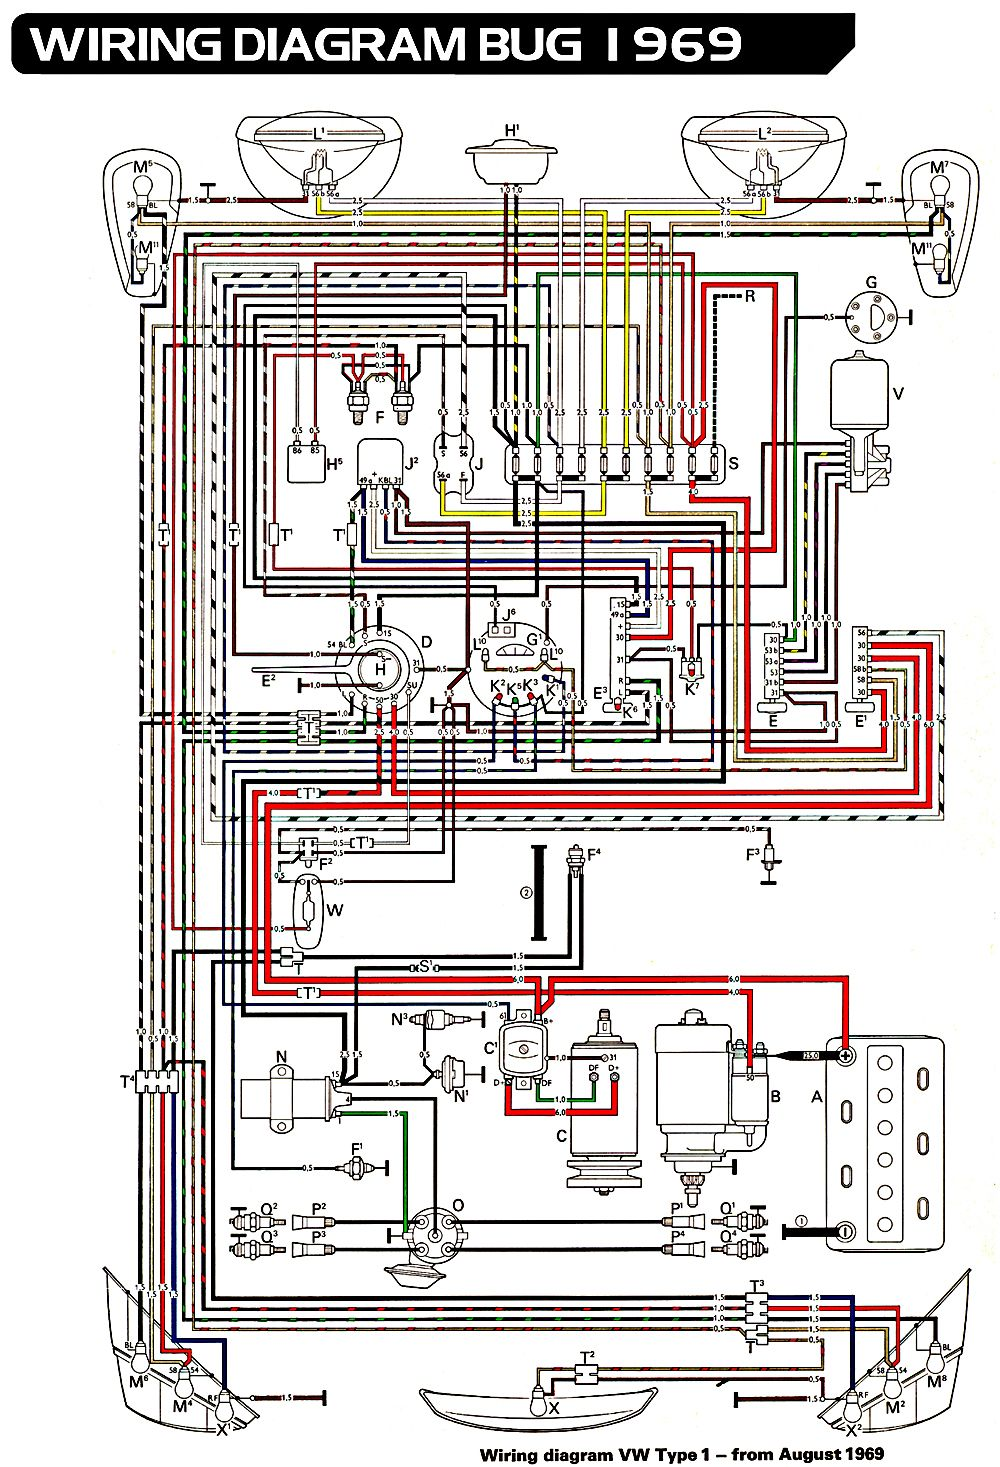 2003 vw beetle wiring harness volkswagen beetle wiring diagram - 1966 vw beetle wiring ...